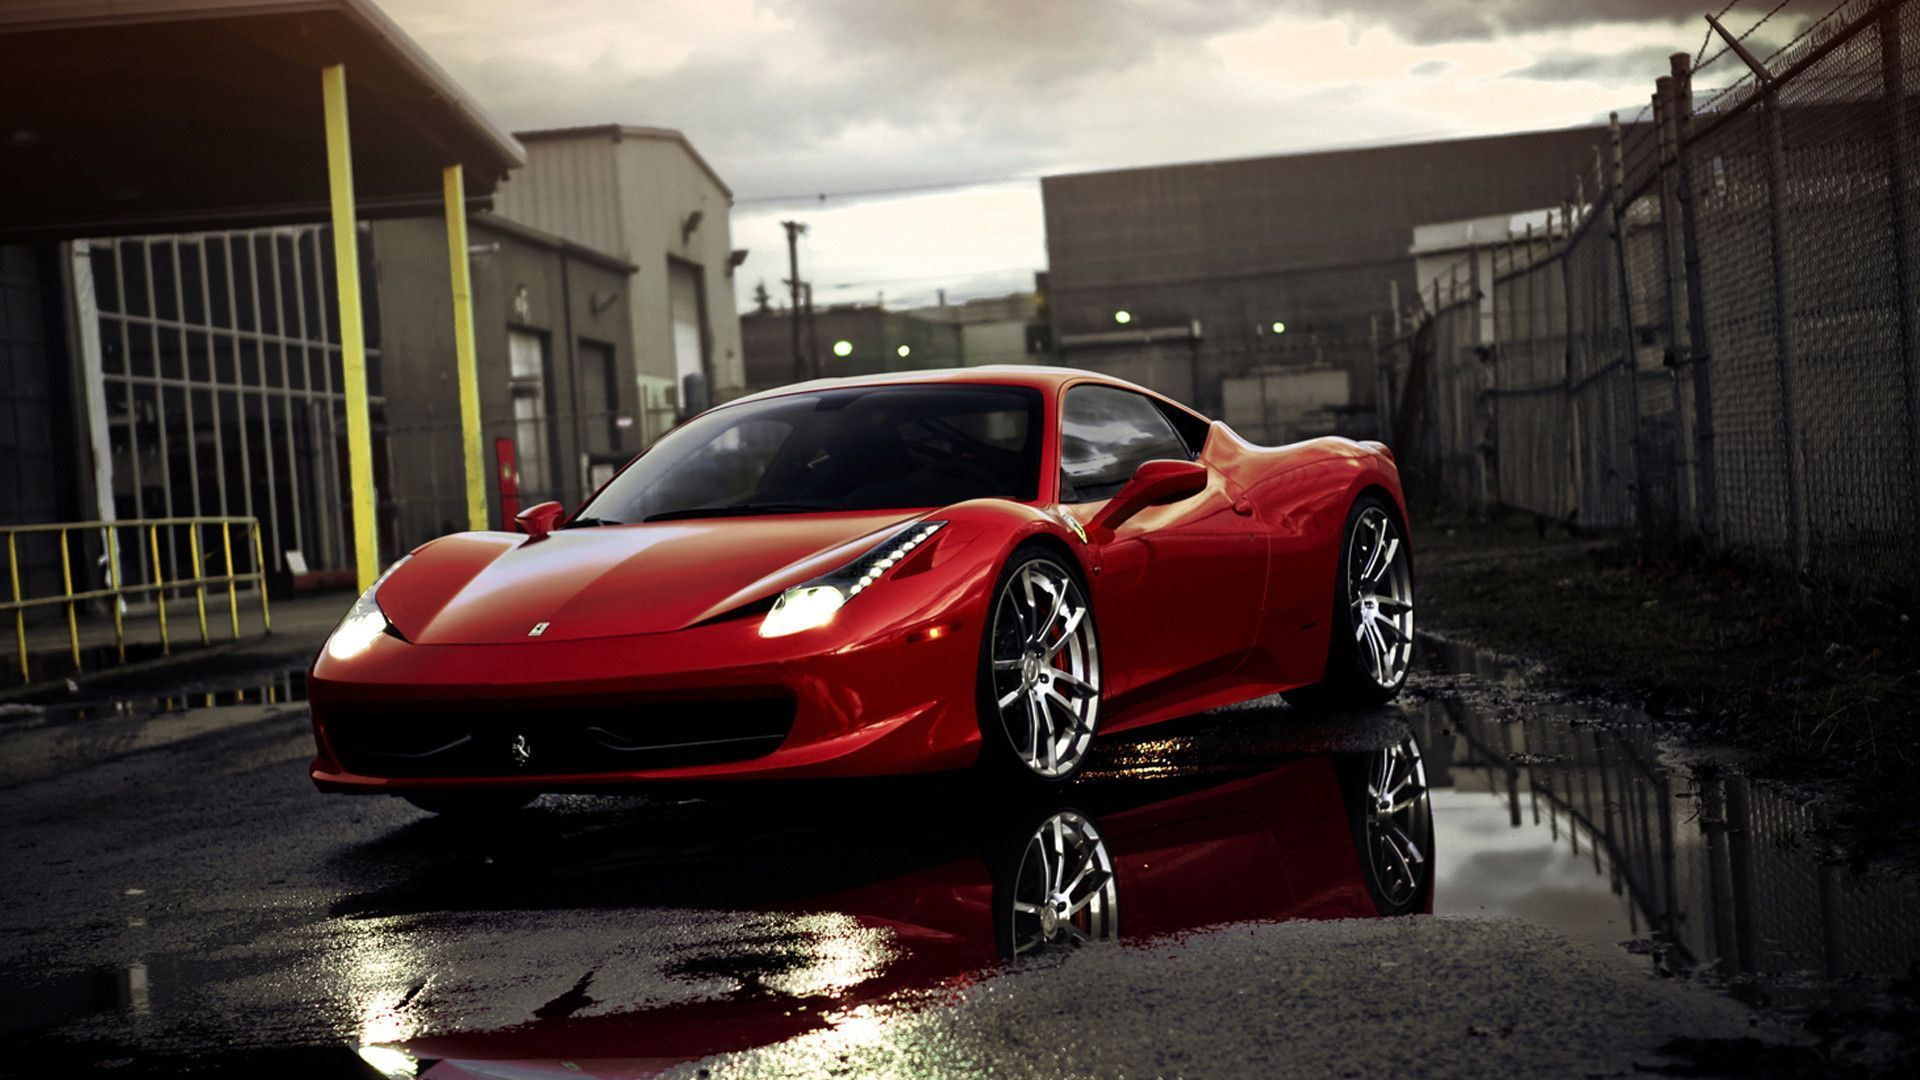 1920x1080 - Ferrari 458 Italia Wallpapers 12